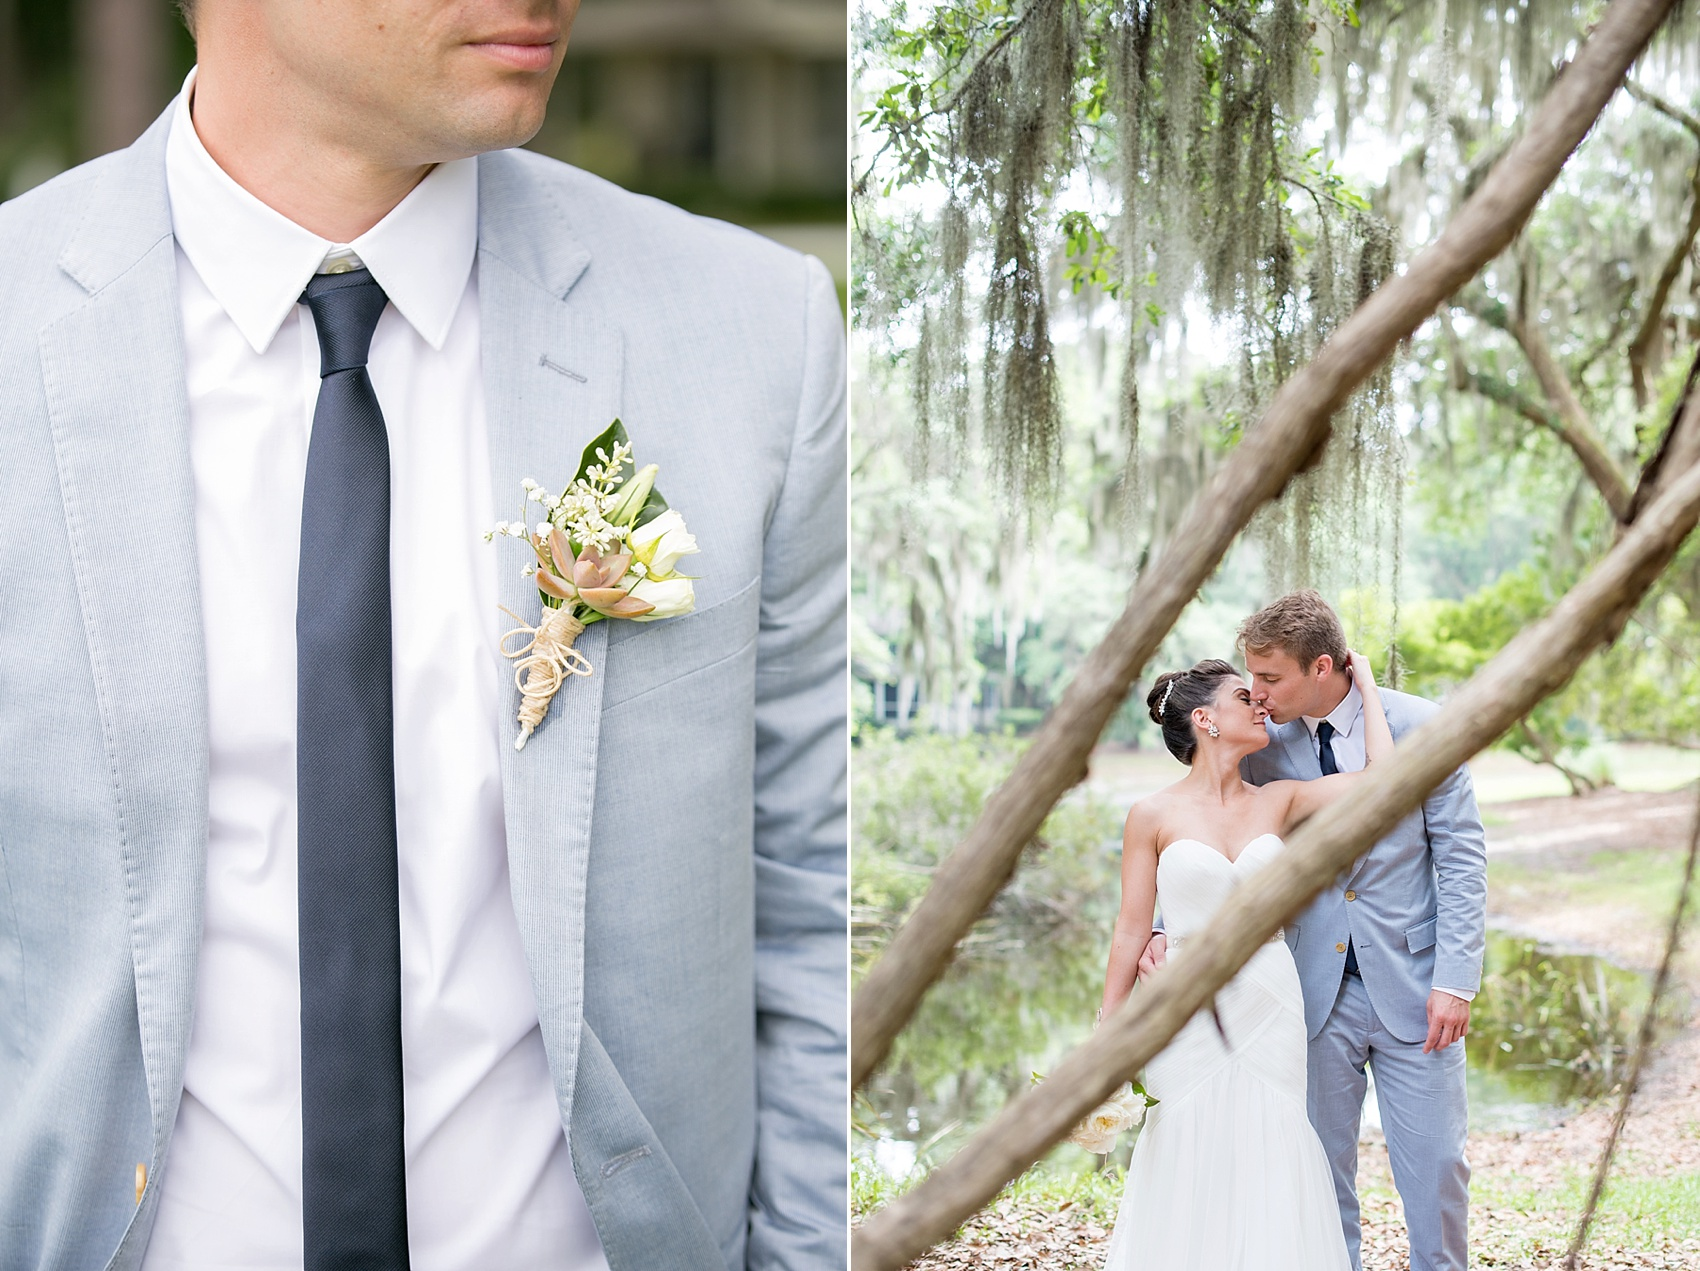 Bride and groom photos in Haig Point, South Carolina, off the coast of Hilton Head amidst Spanish Moss at Daufuskie Island. Photos by Mikkel Paige Photography. Succulent boutonniere on the groom's blue seersucker suit.